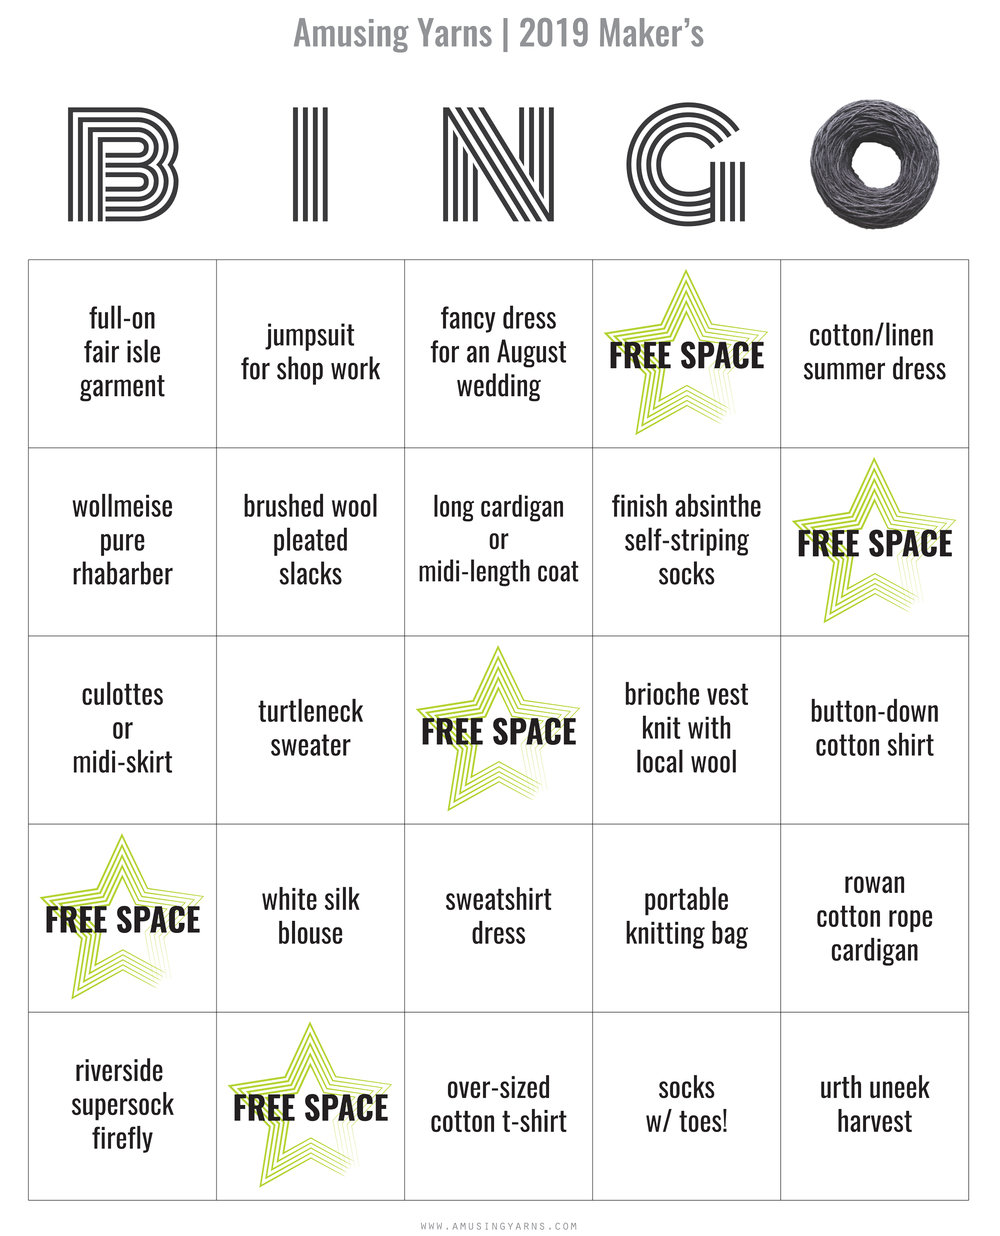 2019-Maker's-Bingo-Card_AY_v2-1.jpg